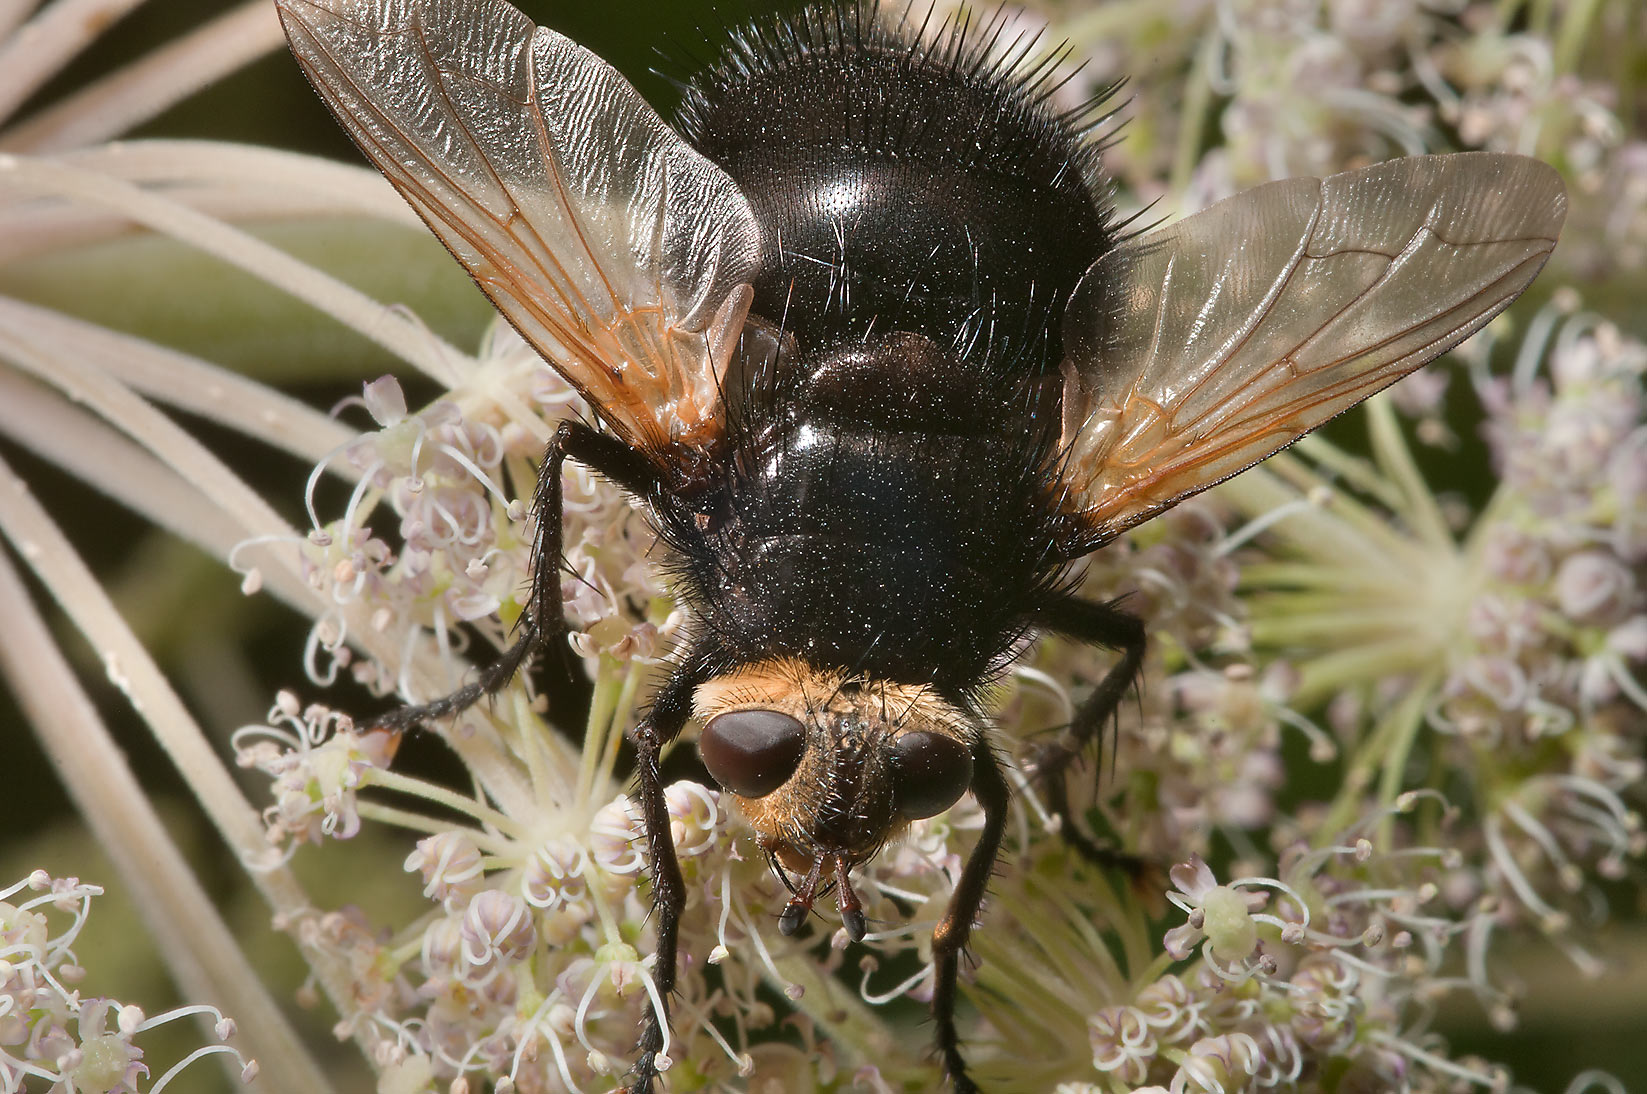 Giant tachinid fly (Tachina grossa) on flower...miles south from St.Petersburg. Russia